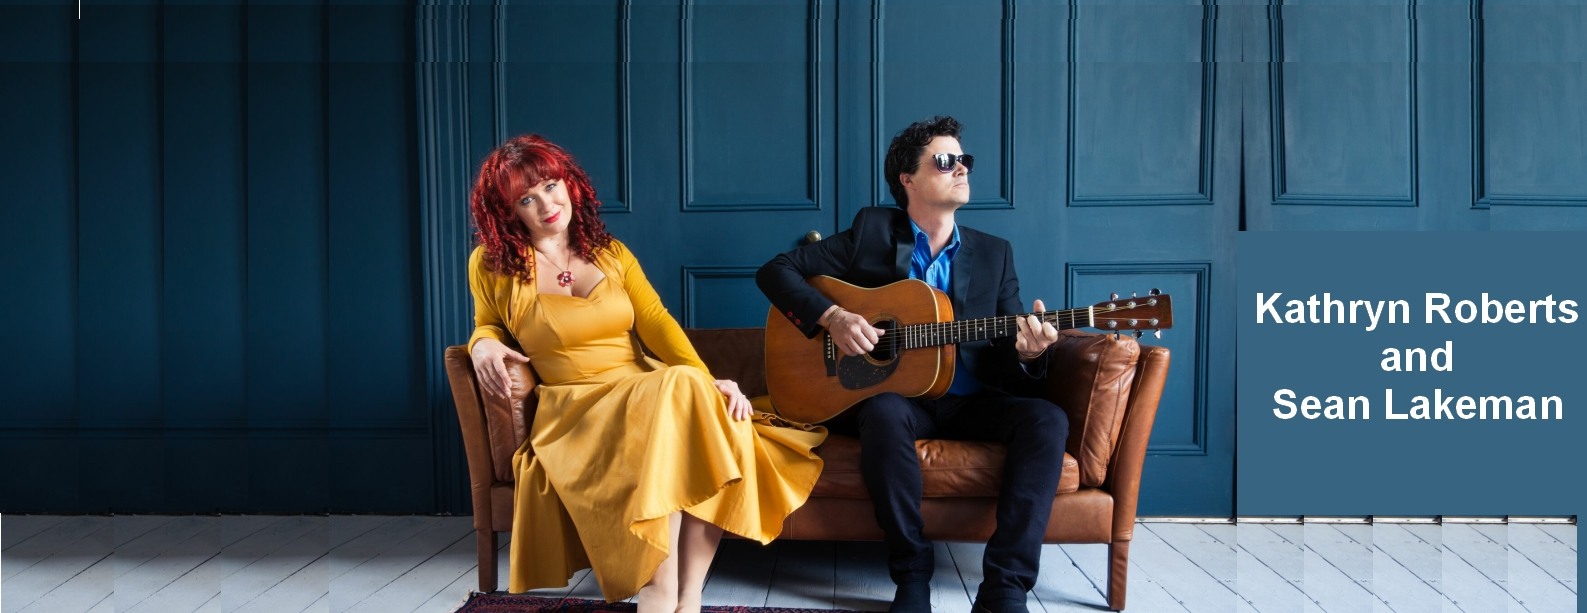 Kathryn Roberts and Sean Lakeman in Concert